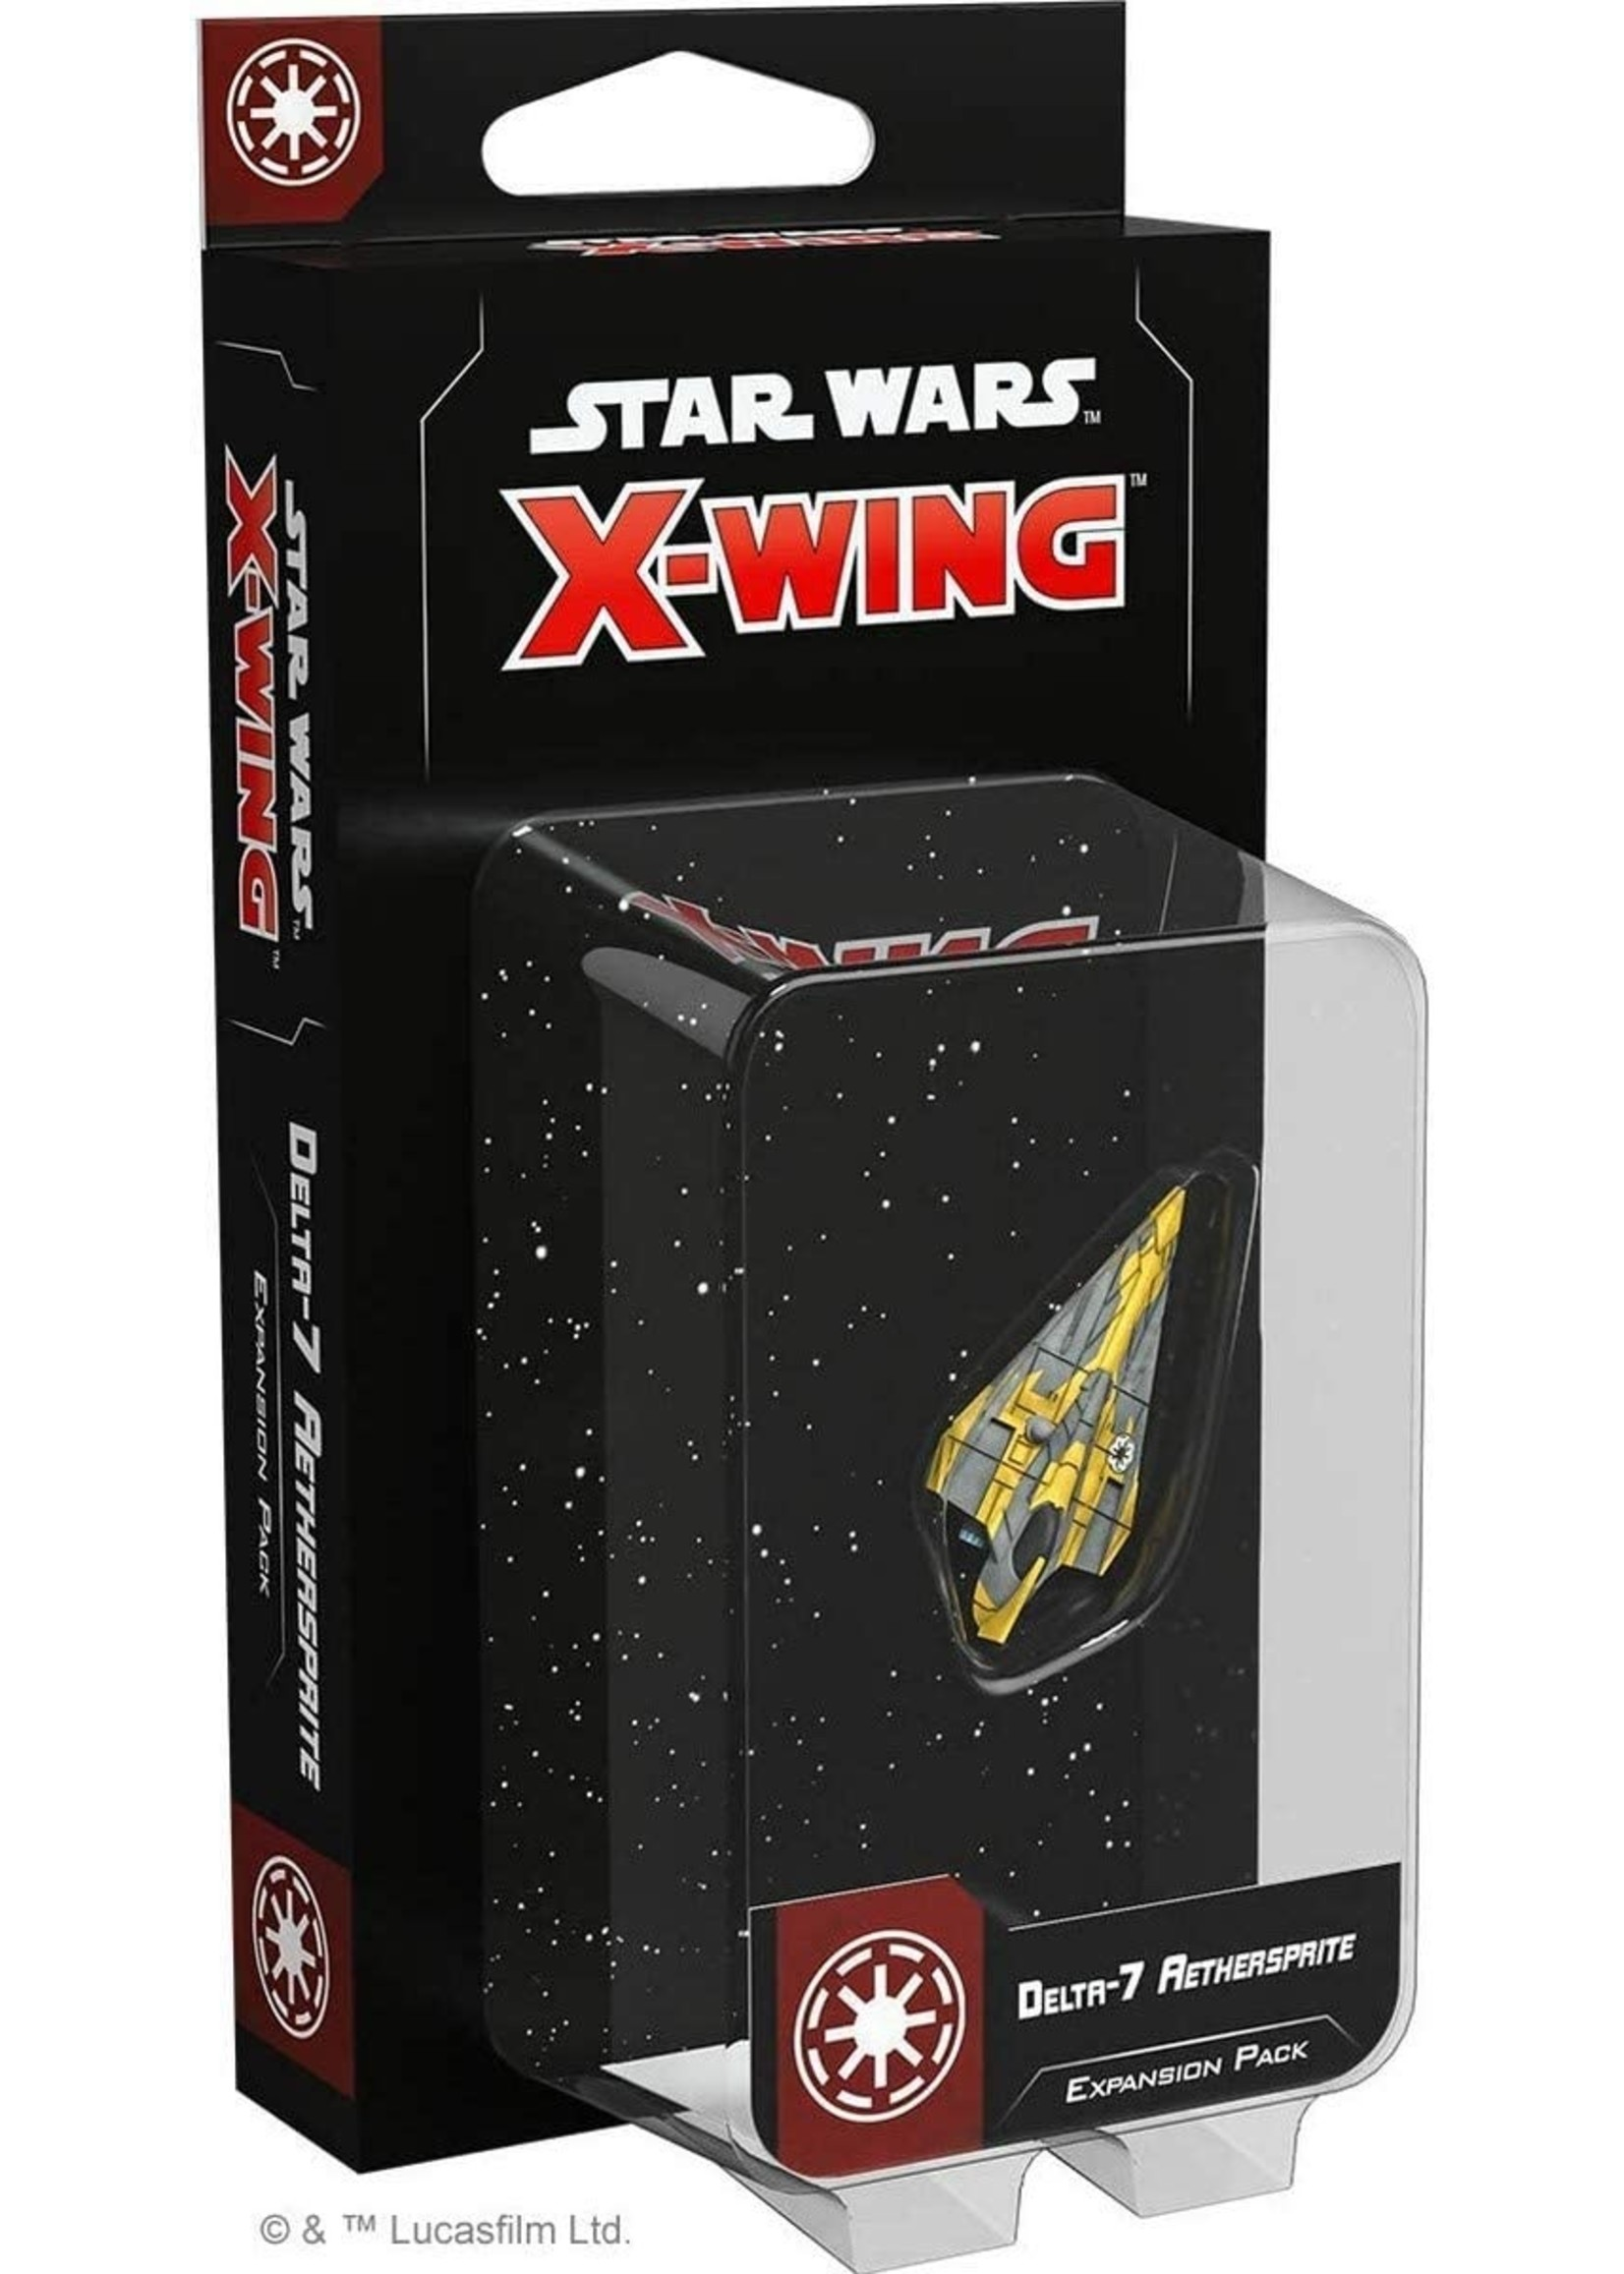 Star Wars X-Wing: 2nd Edition - Delta-7 Aethersprite Expansion Pack